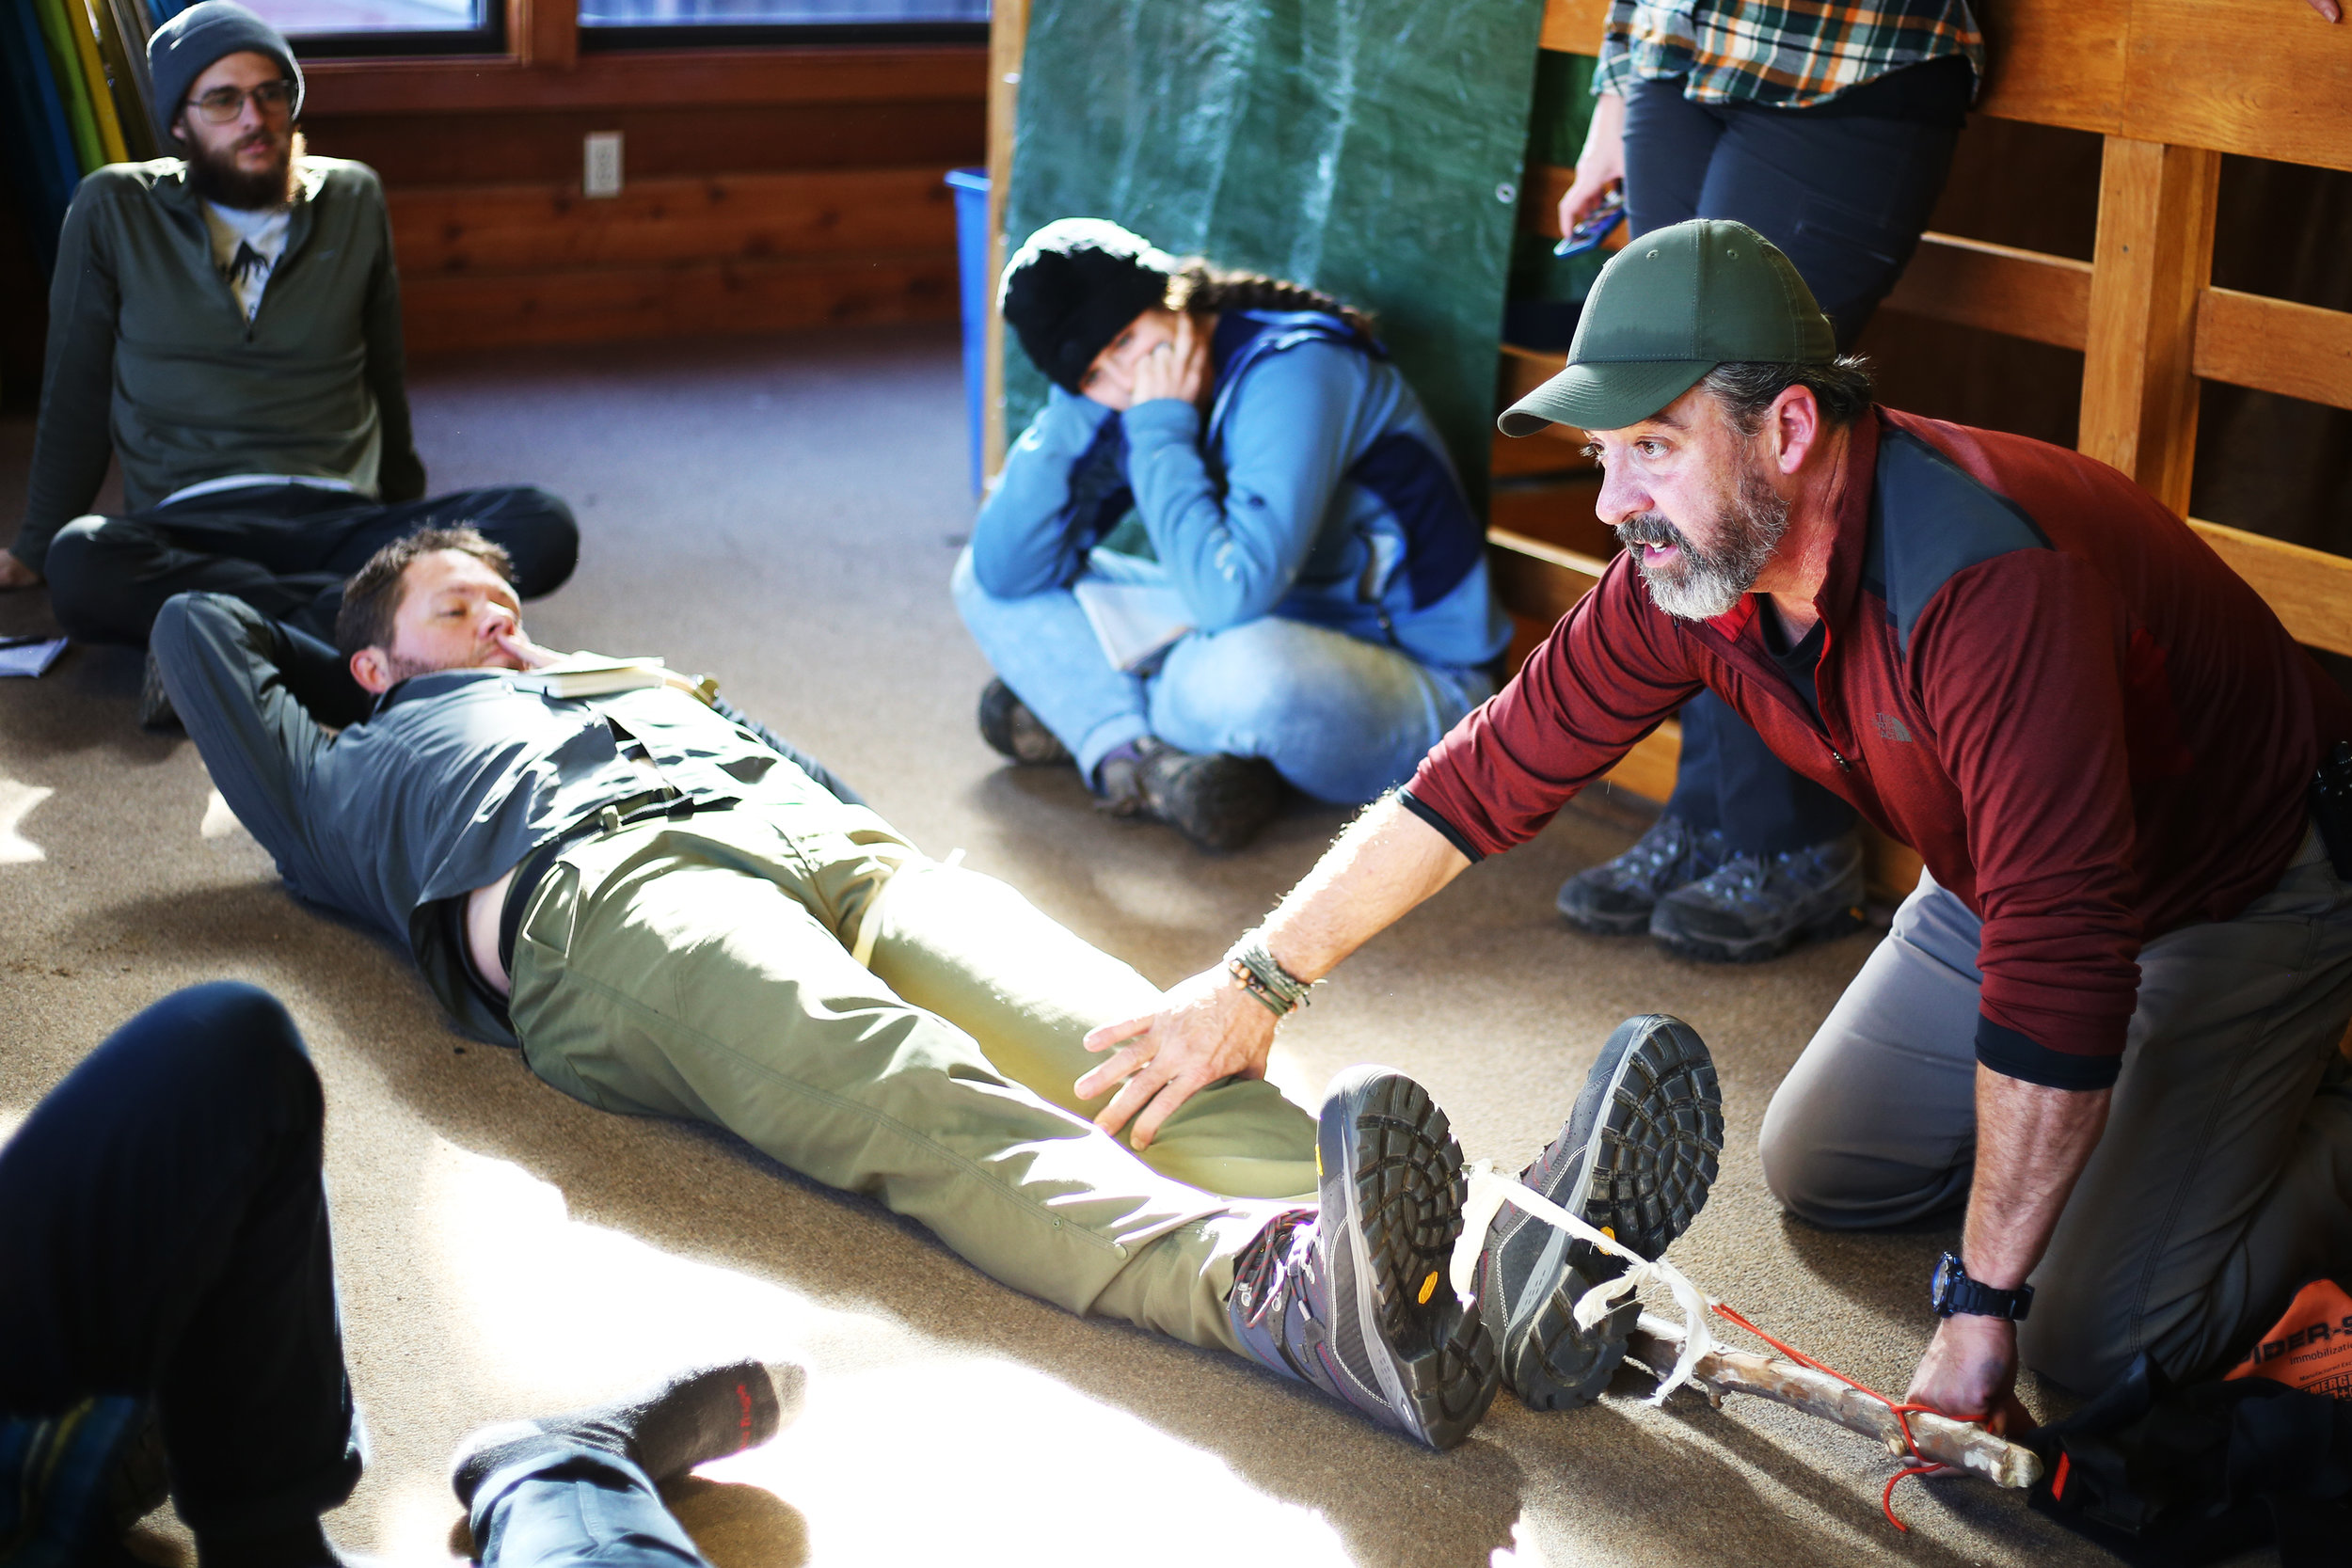 Conceptual physics meets backcountry.  With Chad acting as the patient, Randy teaches us how to set a broken femur using a long tree branch and few pieces of rope.